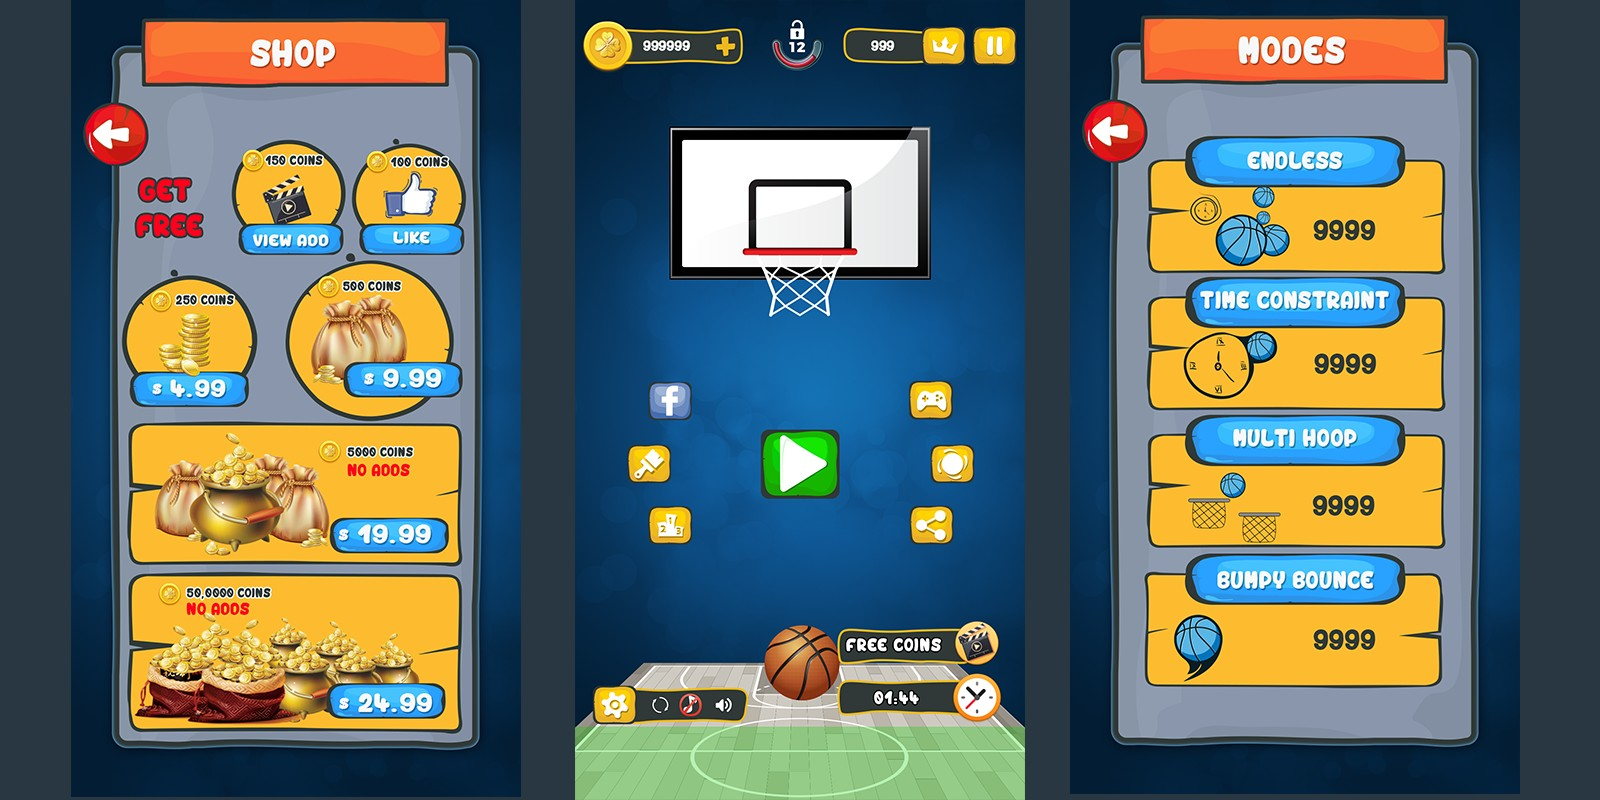 Basket Ball Game Skin - Pack 2